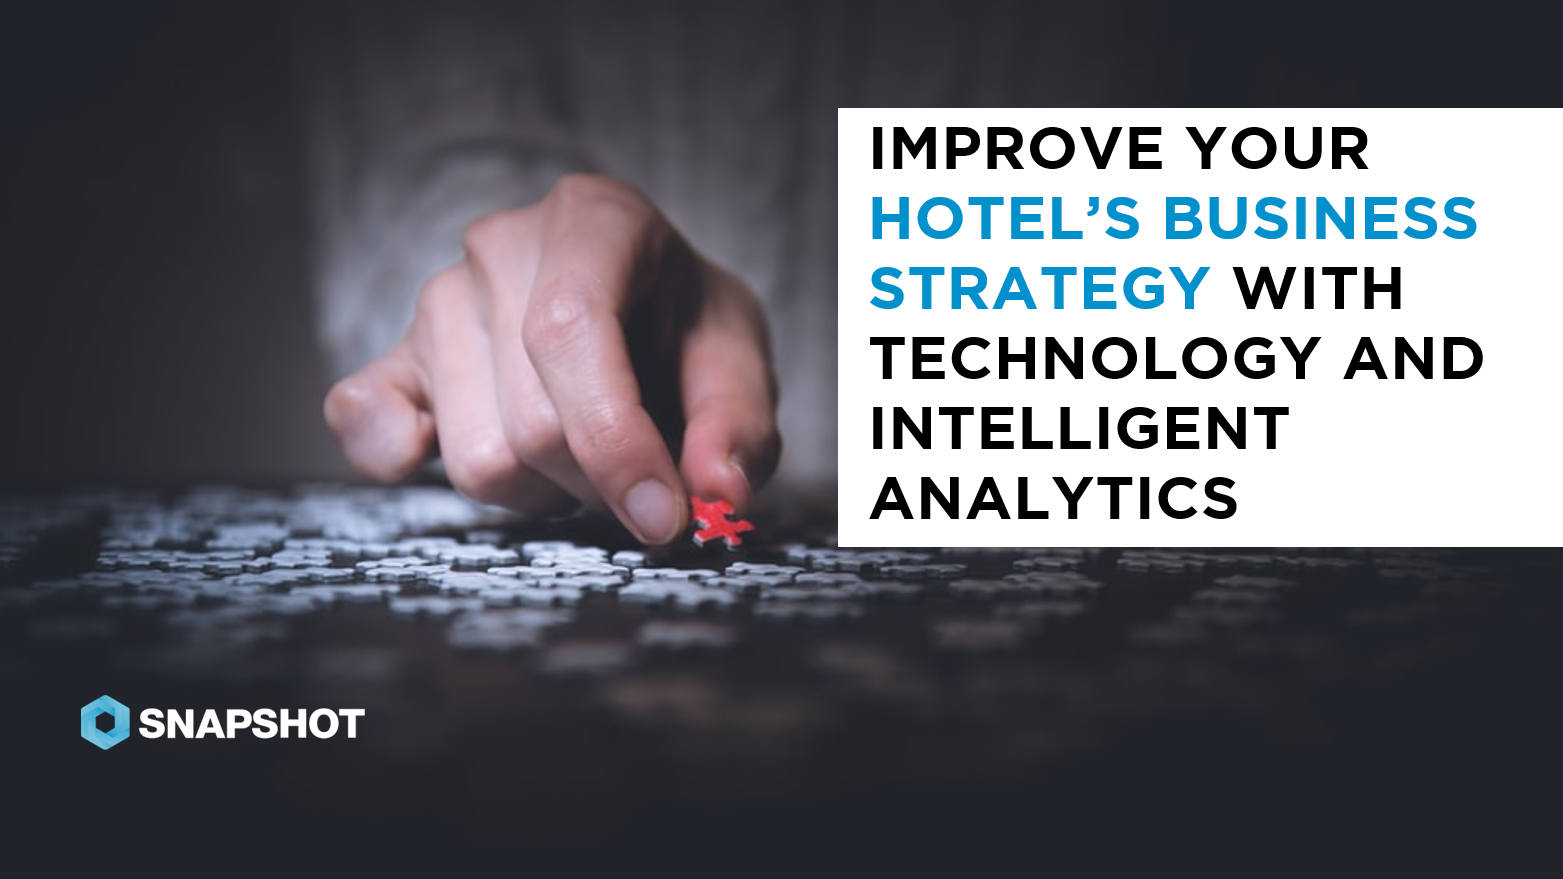 083019 IMPROVE YOUR HOTEL'S BUSINESS STRATEGY WITH TECHNOLOGY AND INTELLIGENT ANALYTICS